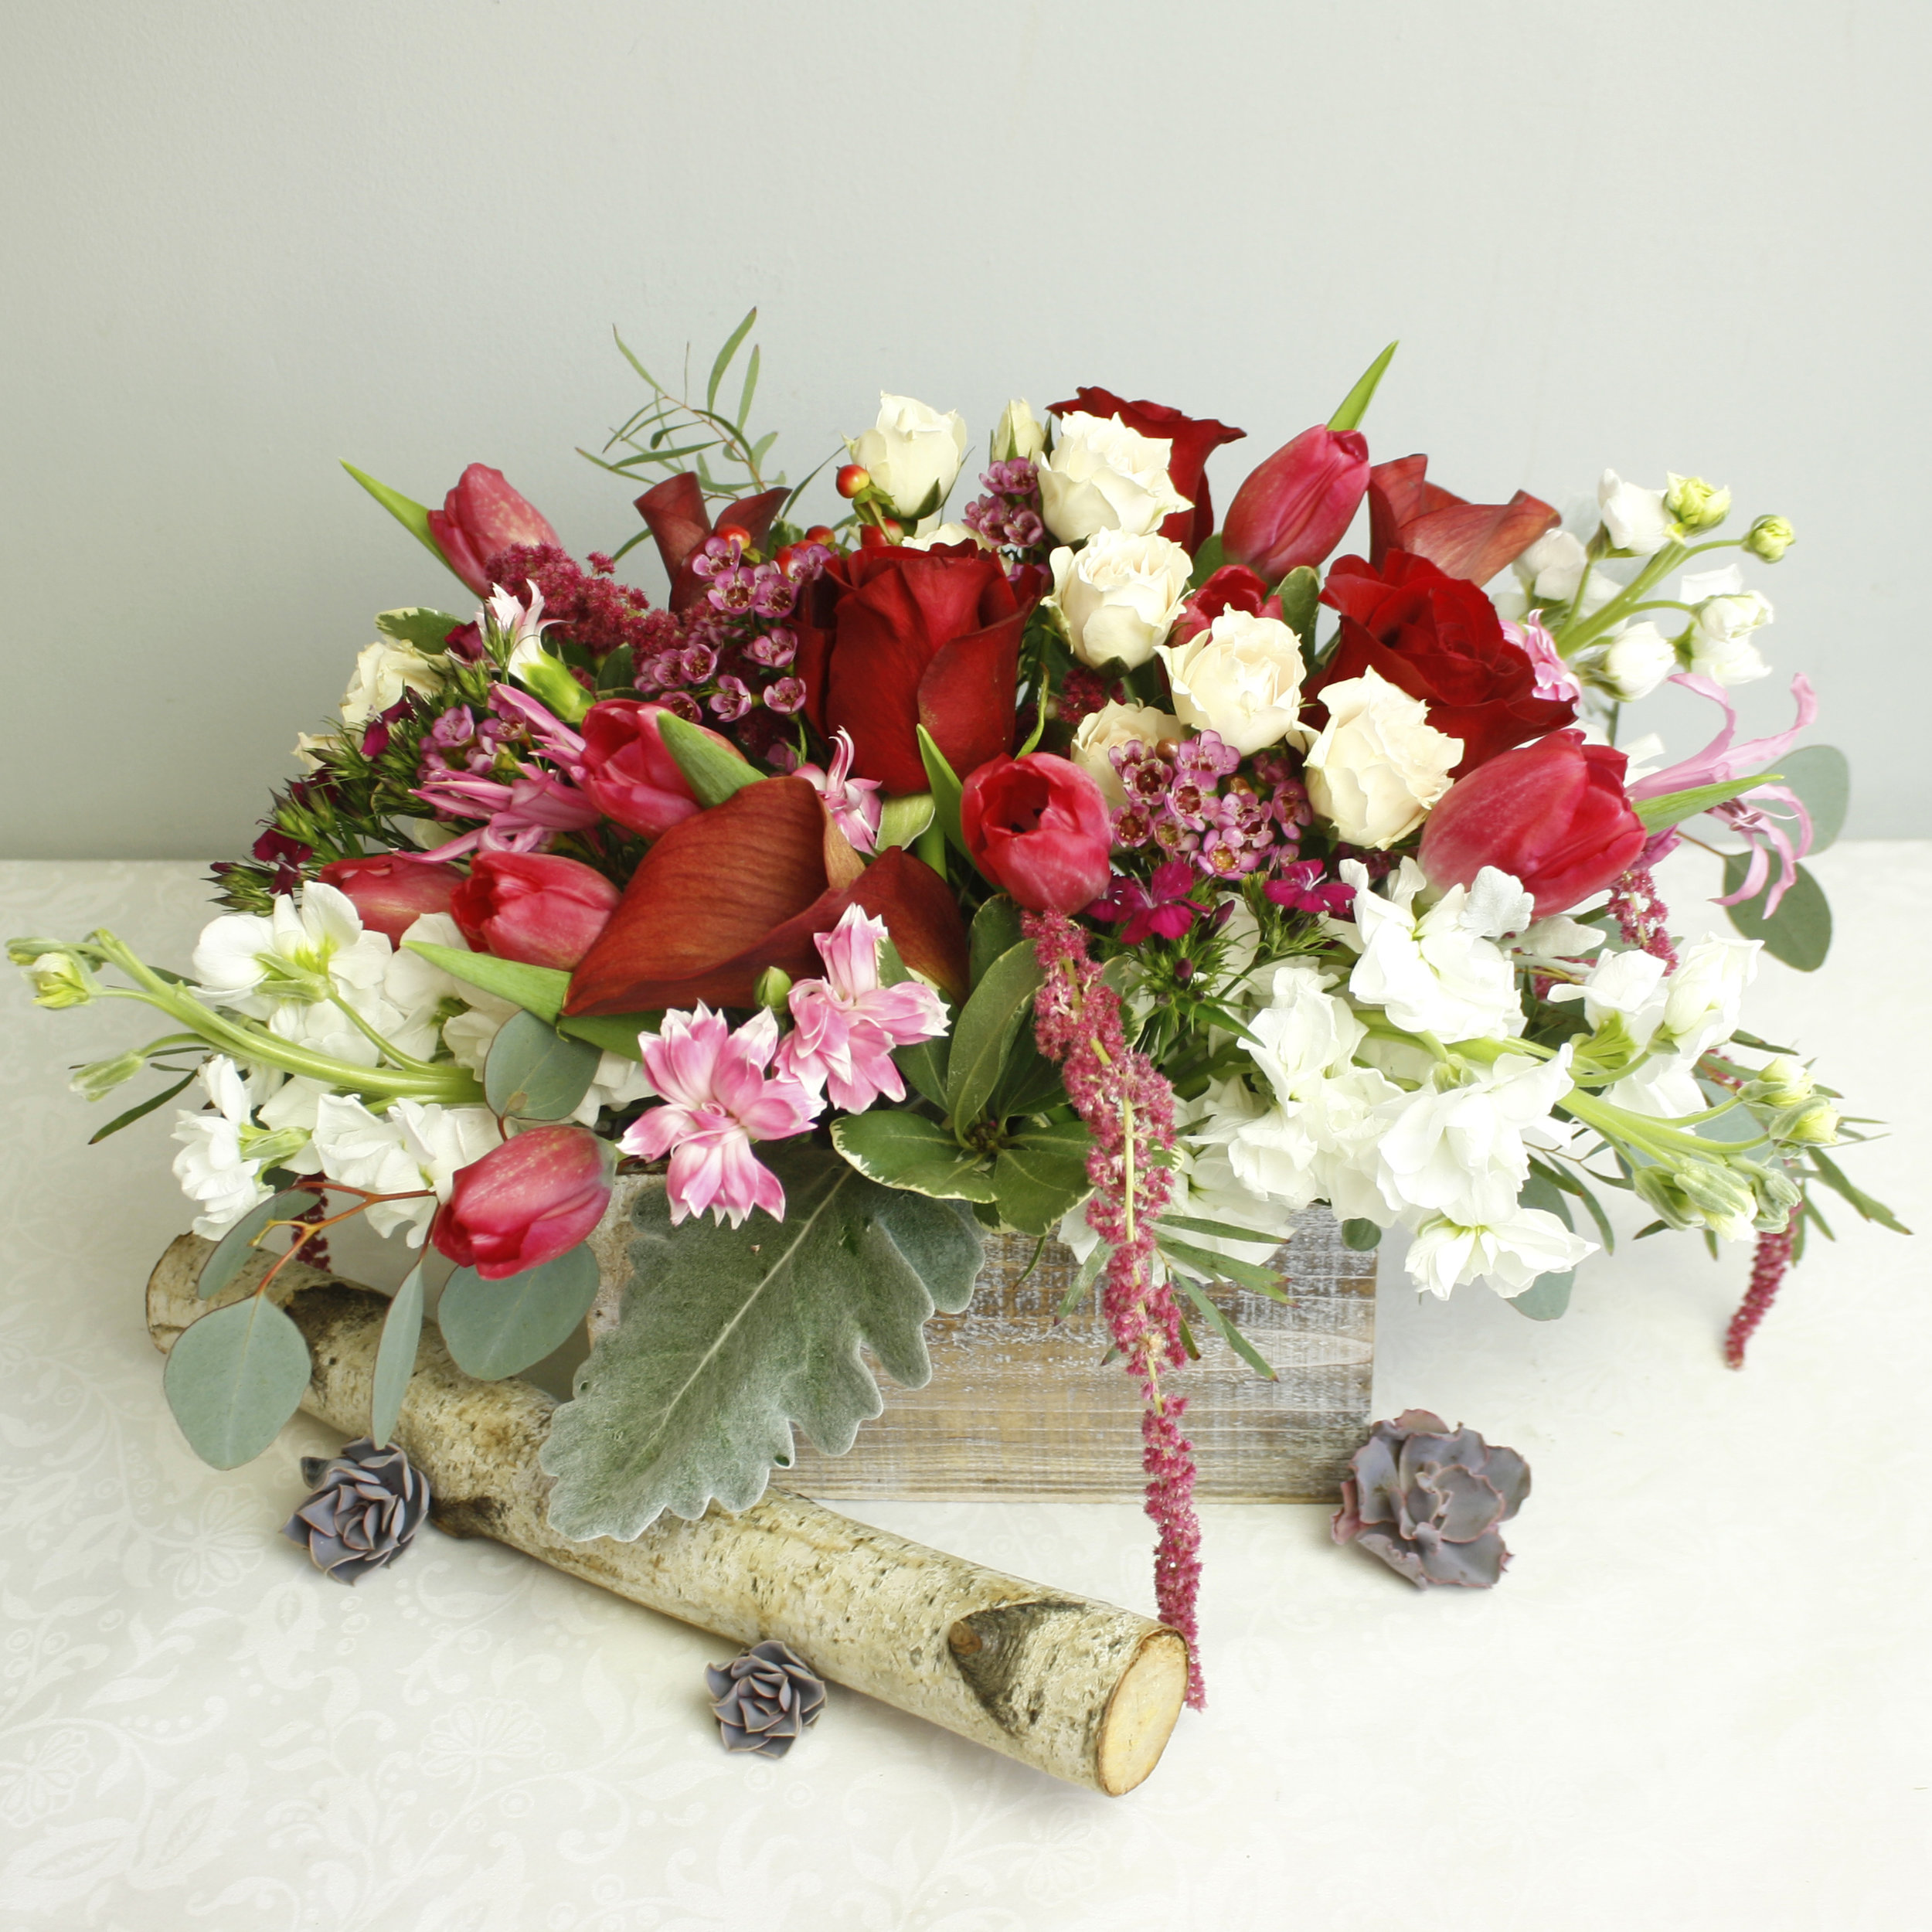 Fairy Tale - red, white, and pink flowers in a wooden box. The perfect way to say I love you for Valentine's Day